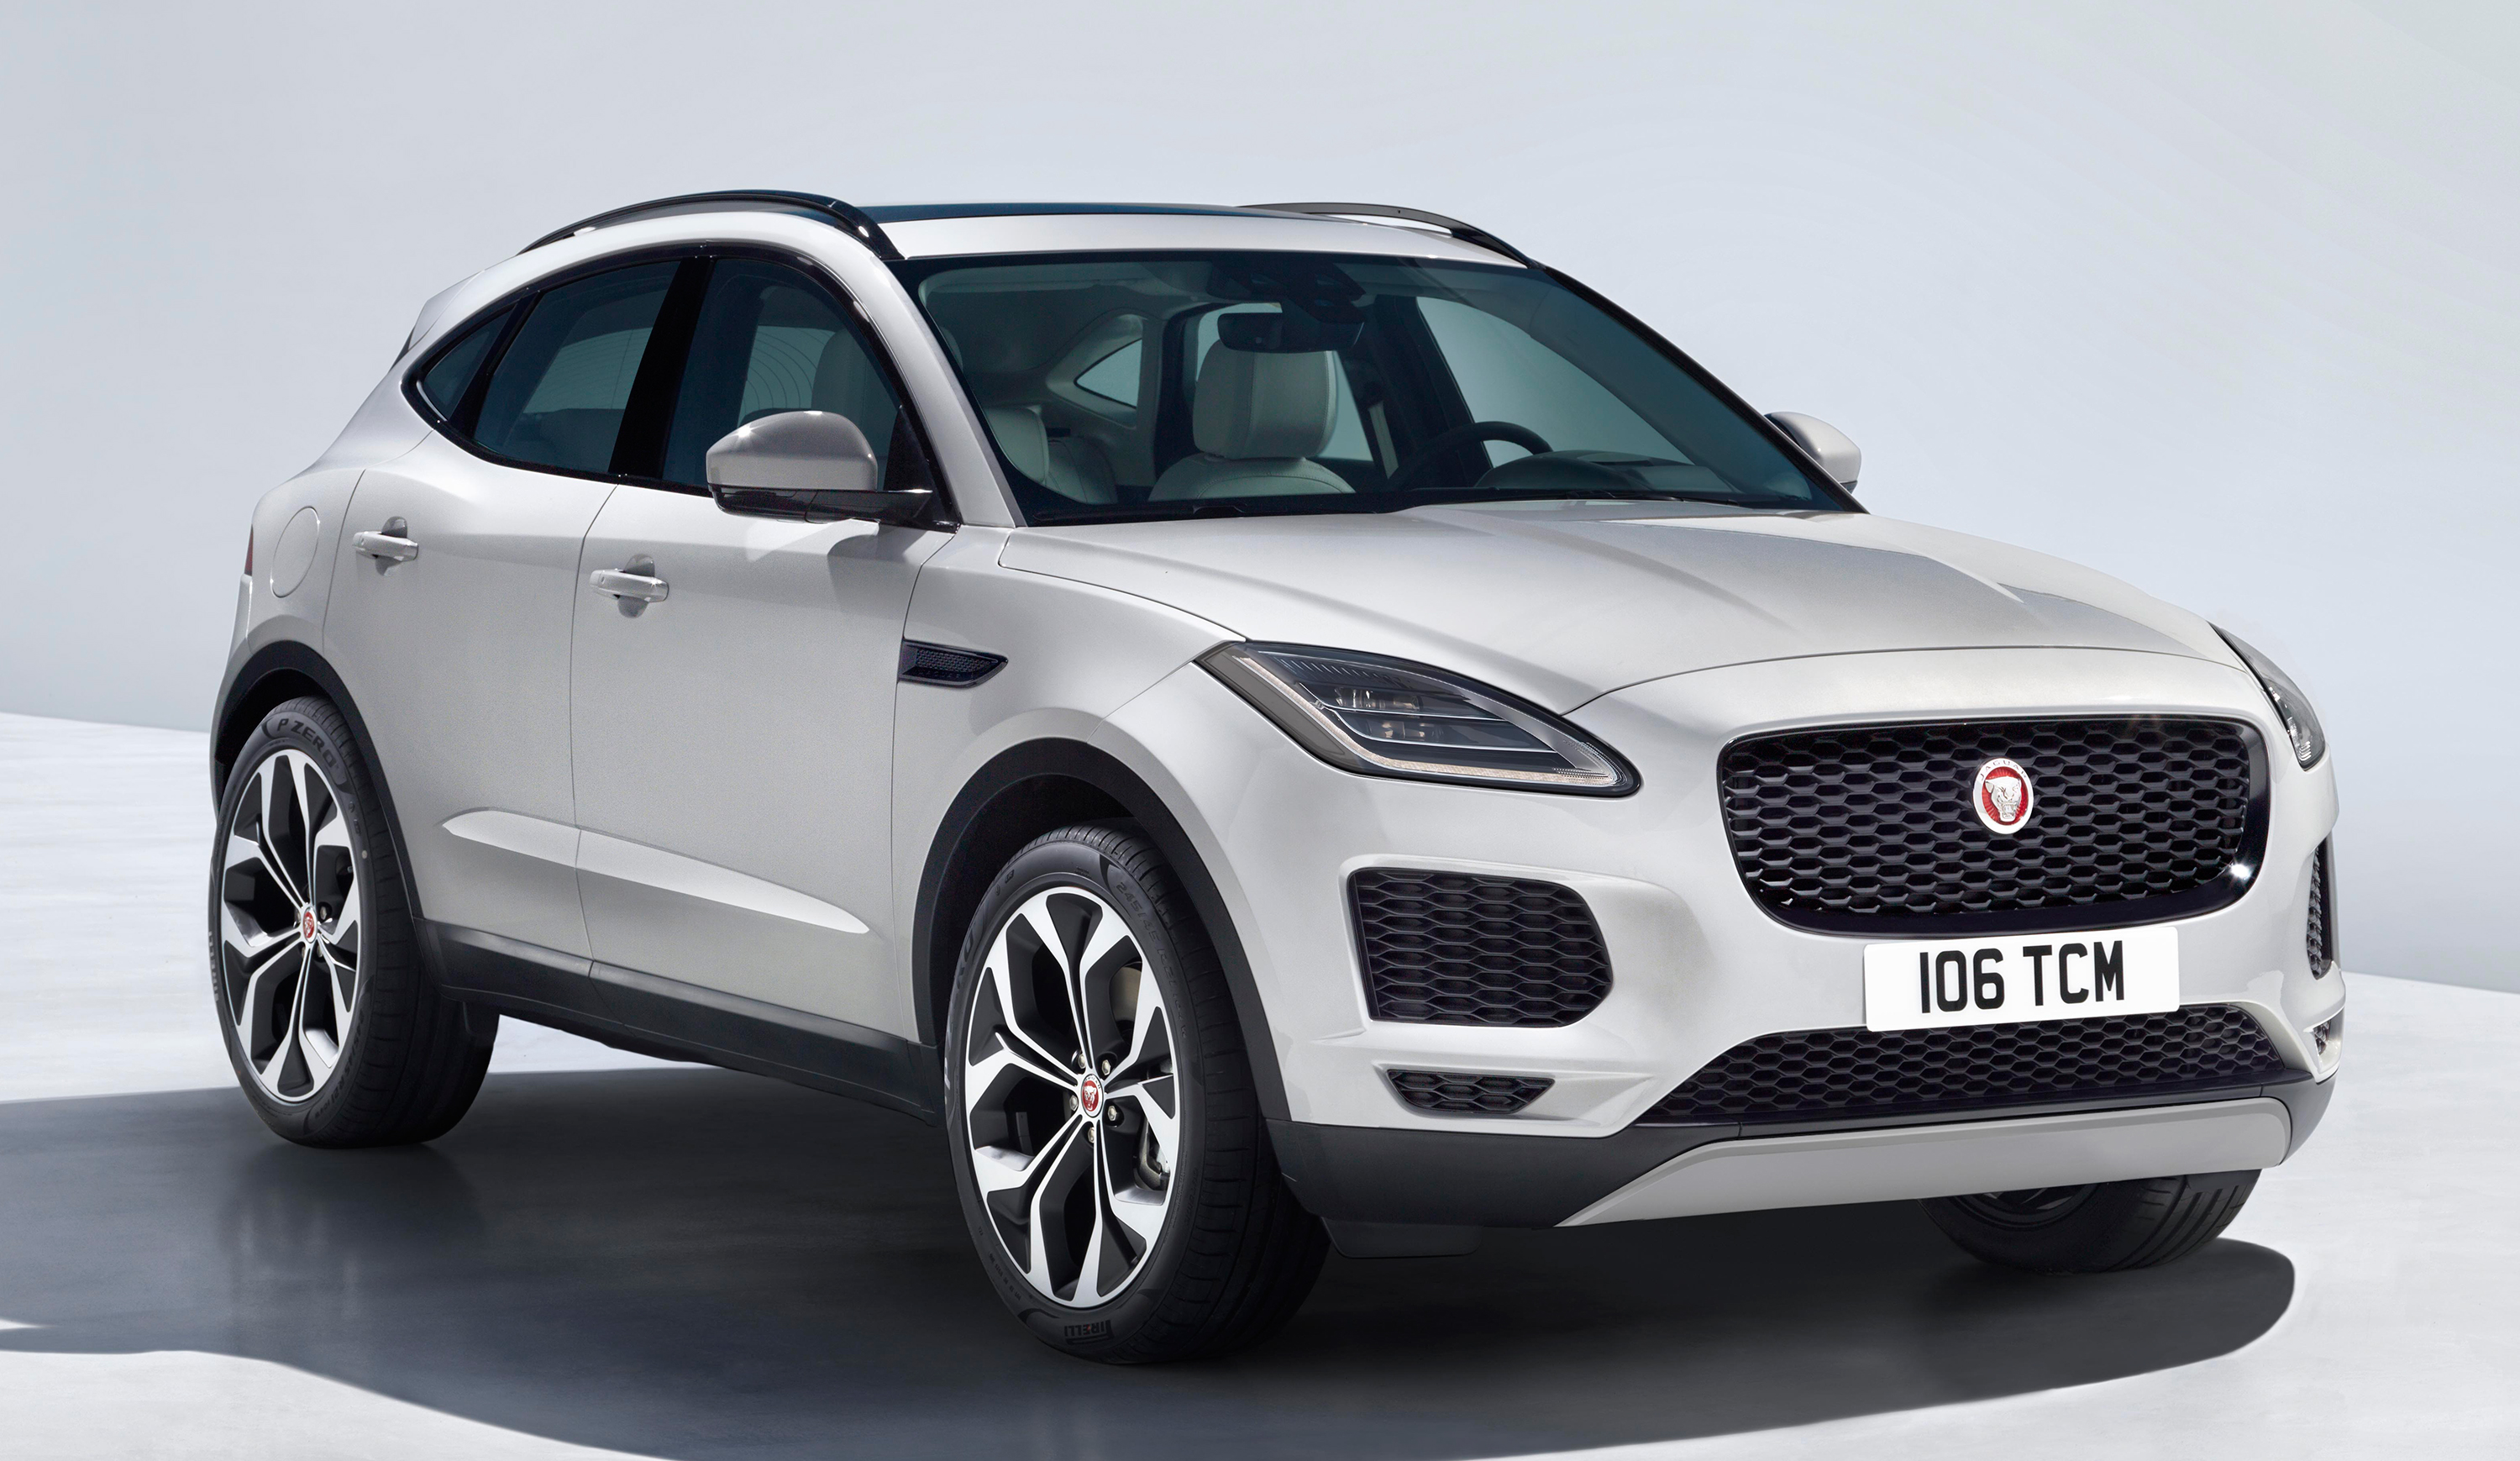 e pace new review suv jaguar news crew roadshow catnip money the young for epace